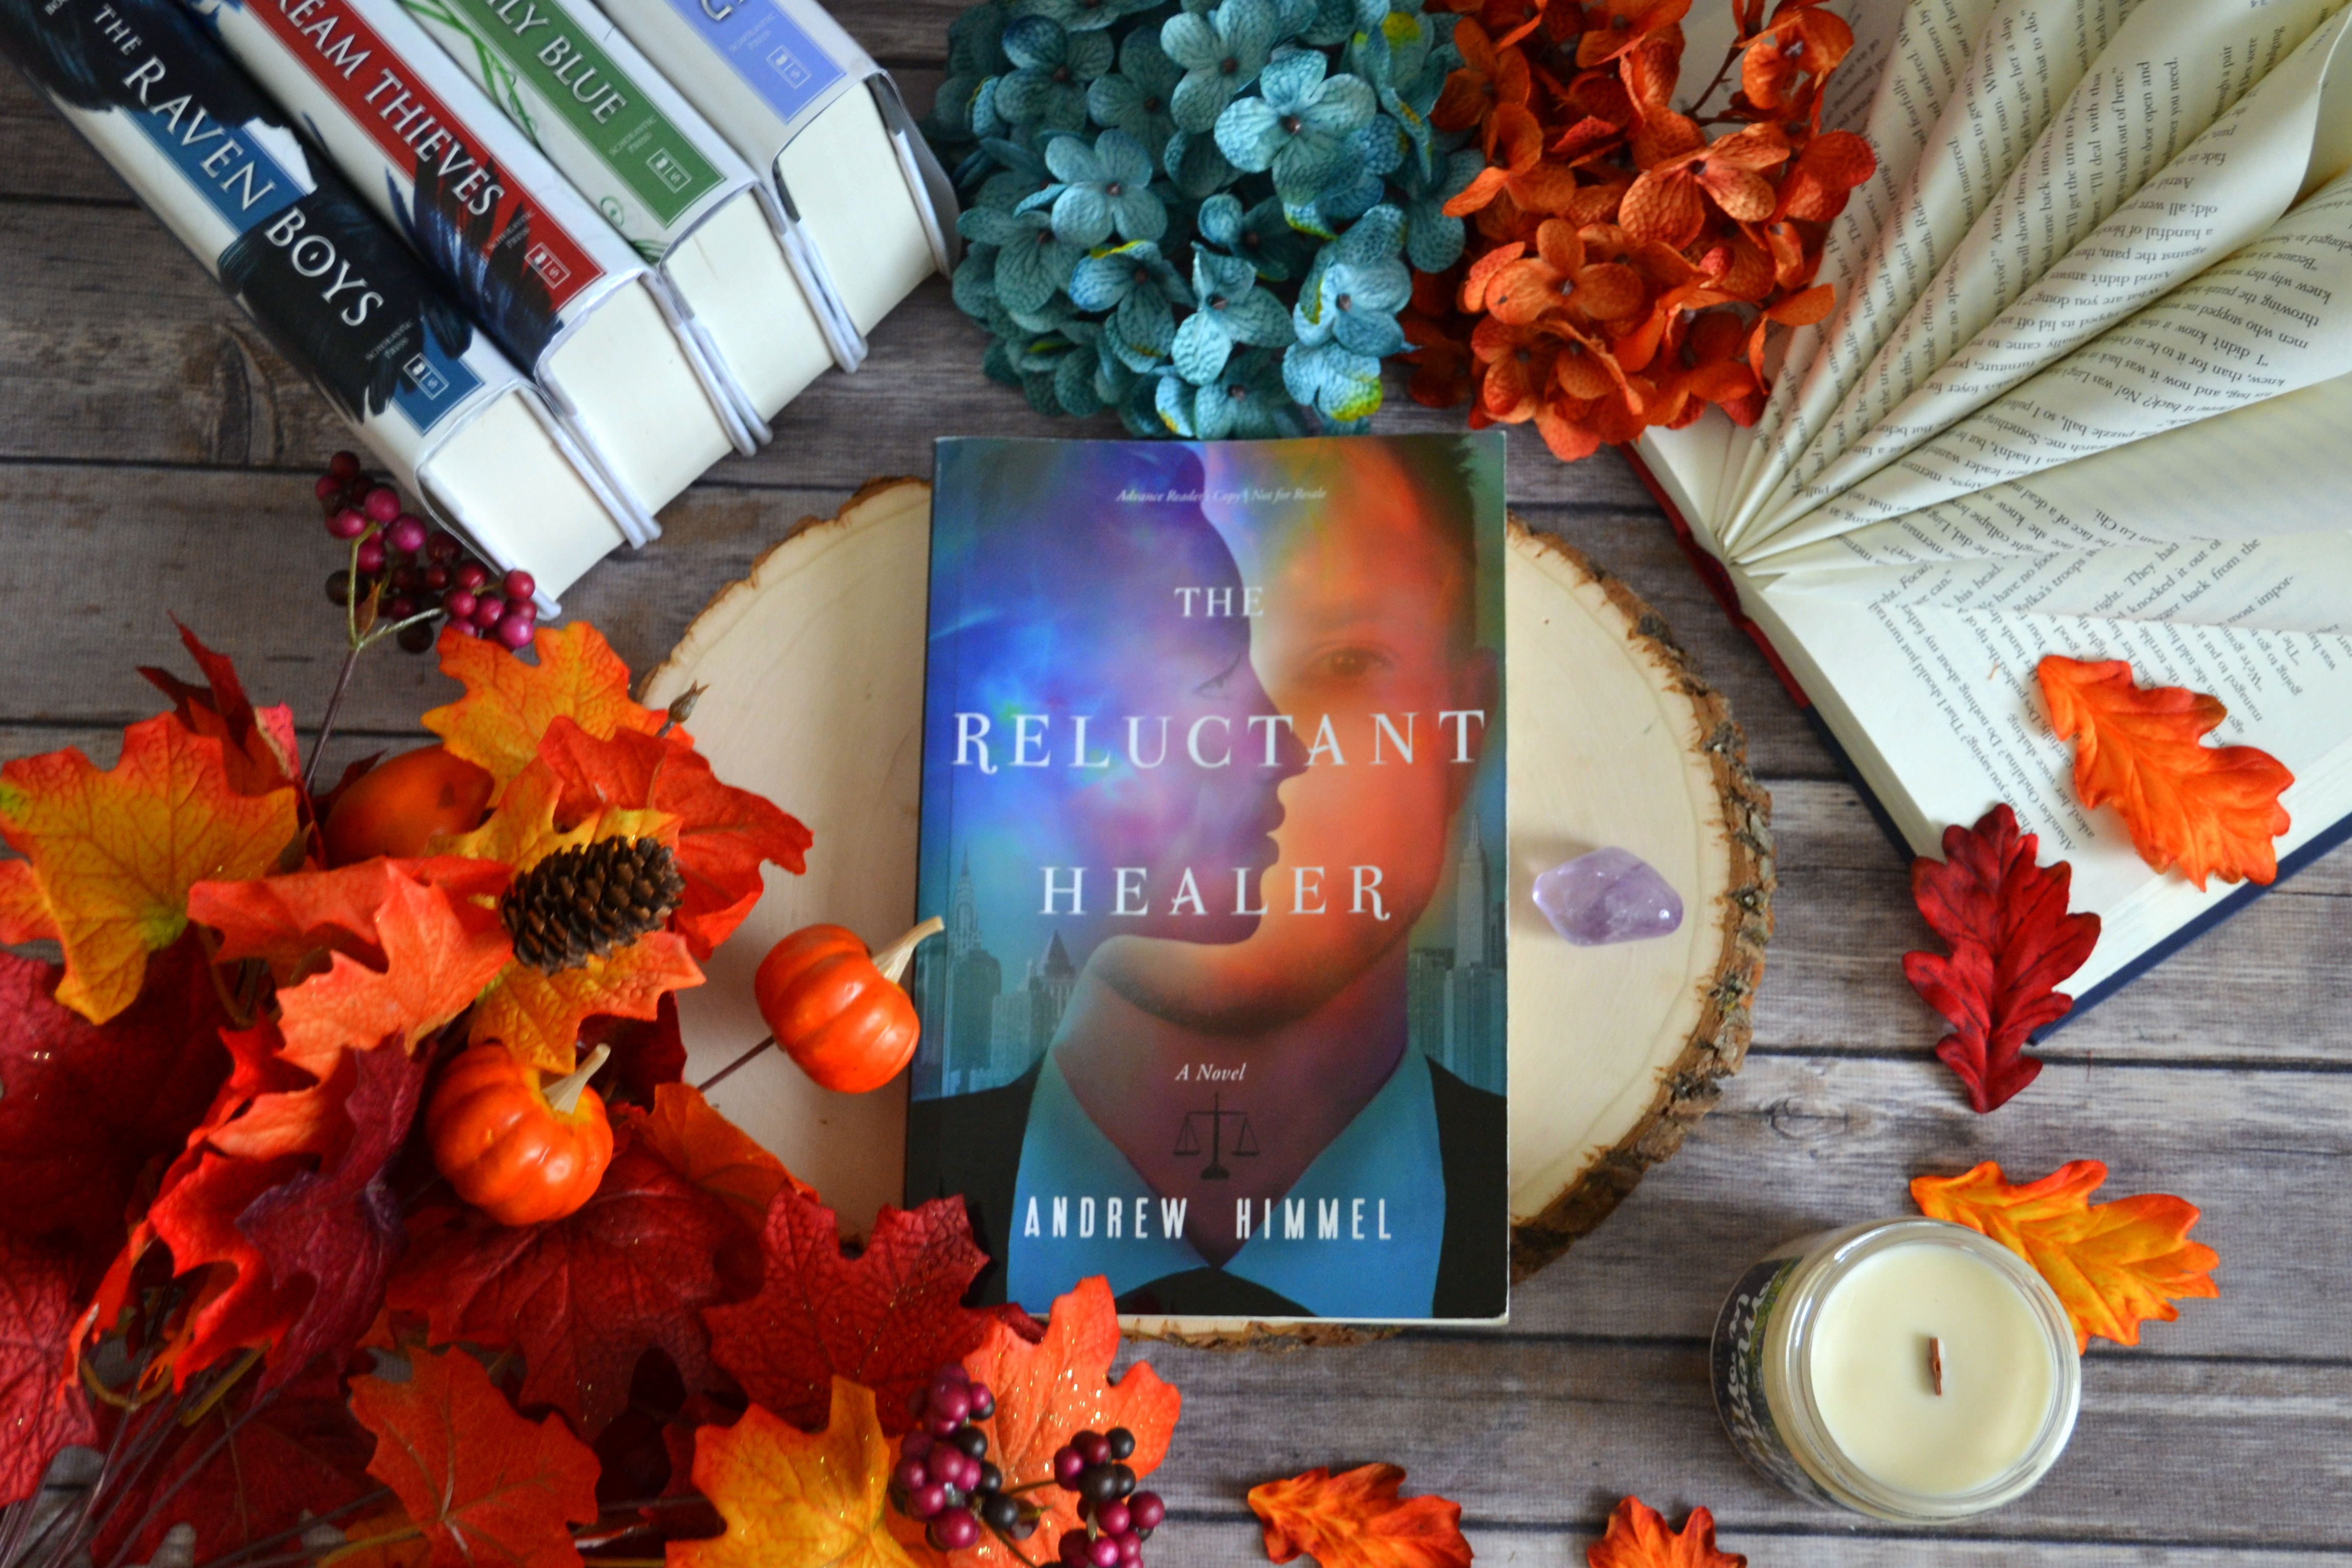 The Reluctant Healer by Andrew Himmel   ARC Review